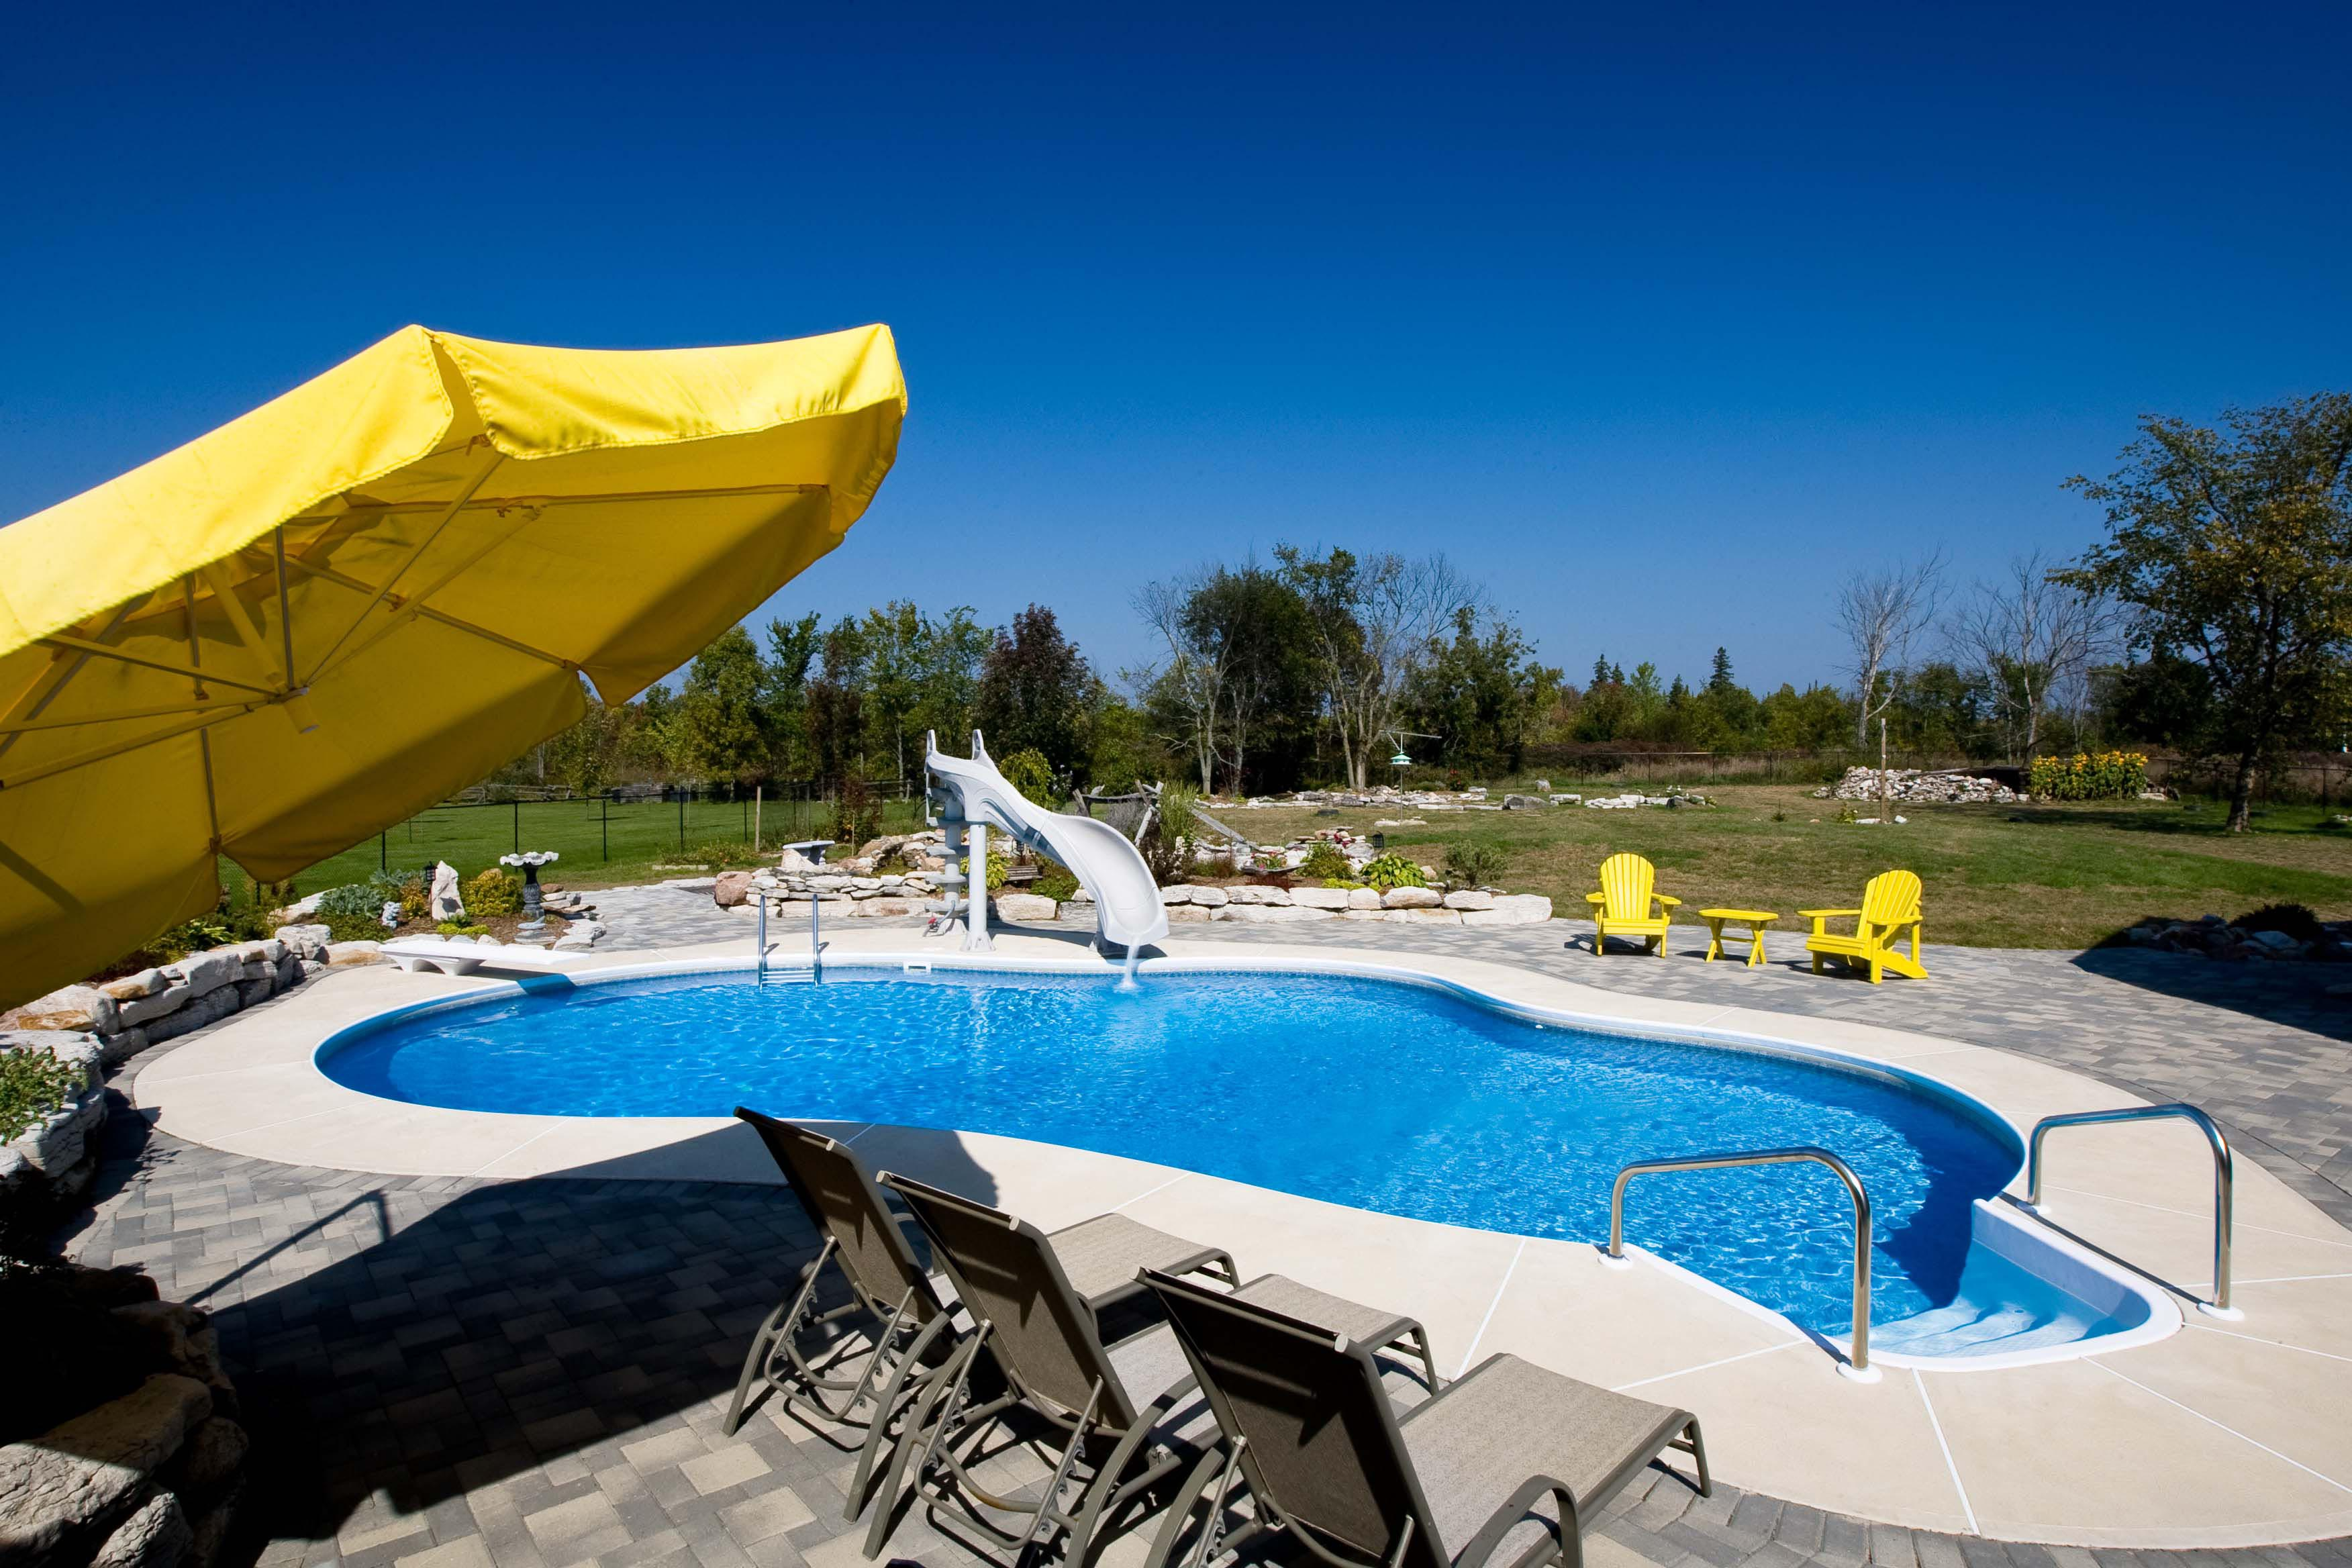 St Lawrence Pools Patio Furniture